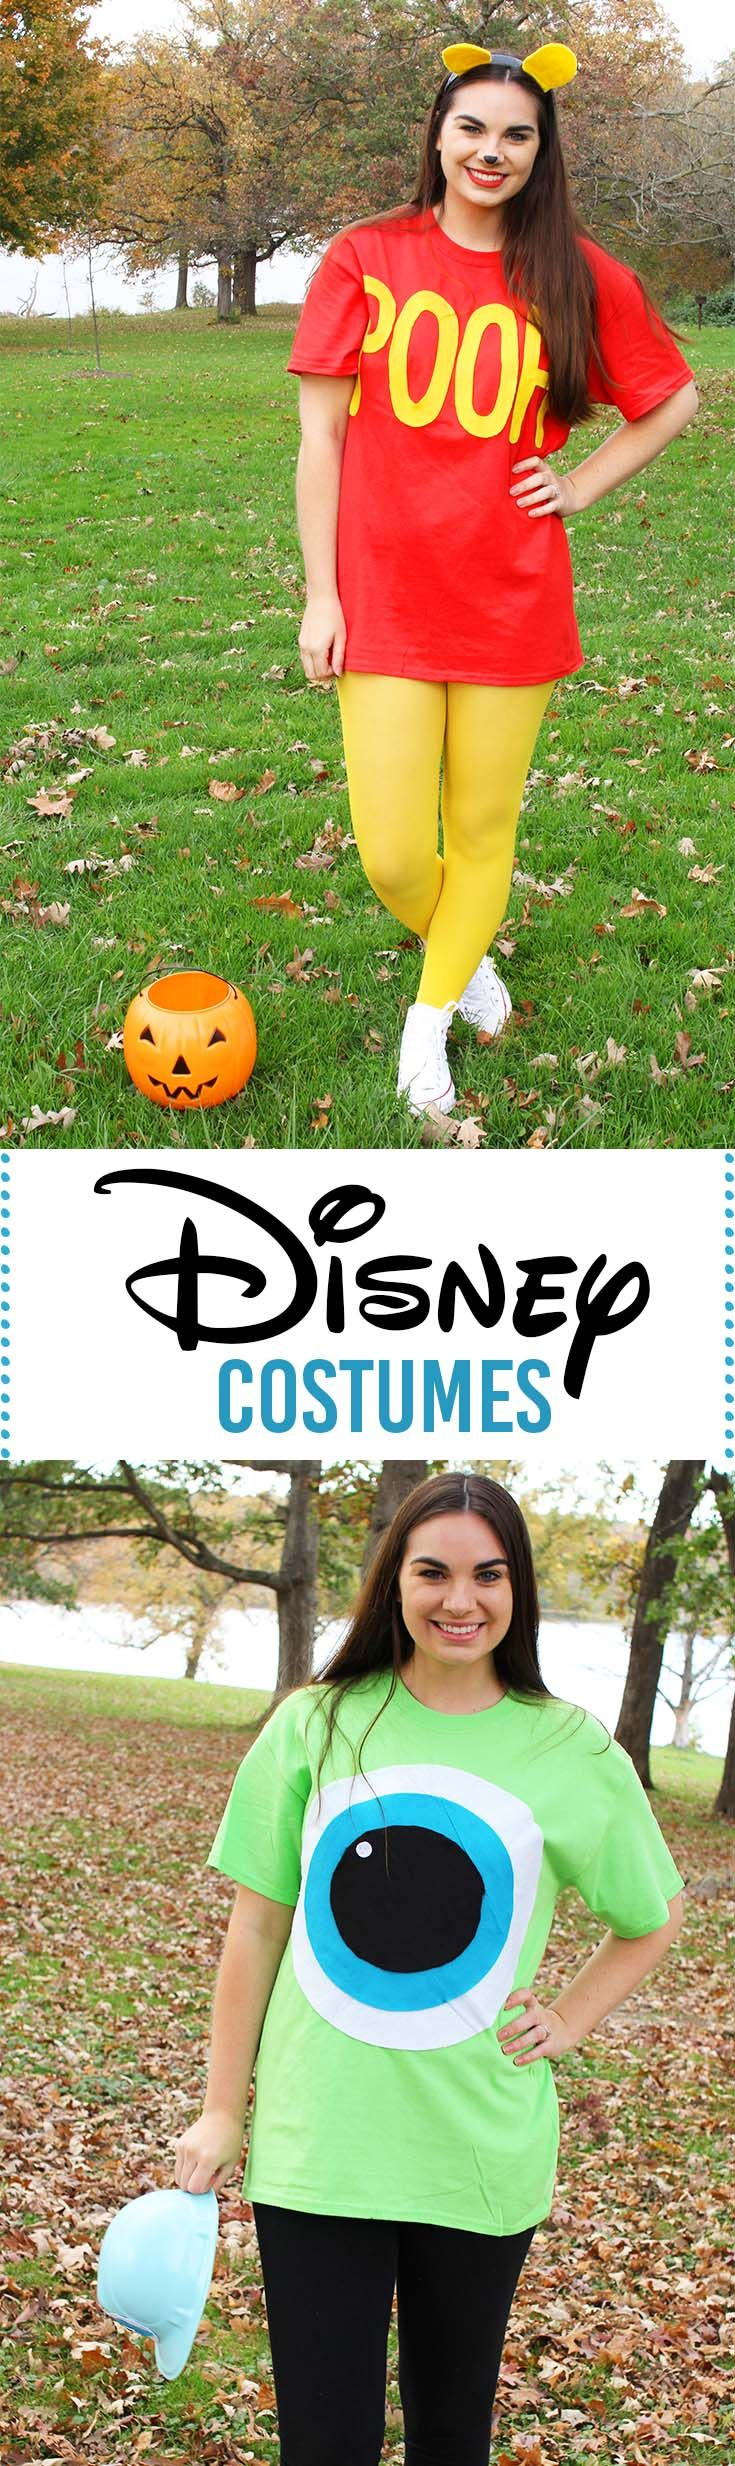 Best 25 character costumes ideas on pinterest character diy last minute disney halloween costumes super easy and inexpensive disney character costumes diy solutioingenieria Choice Image